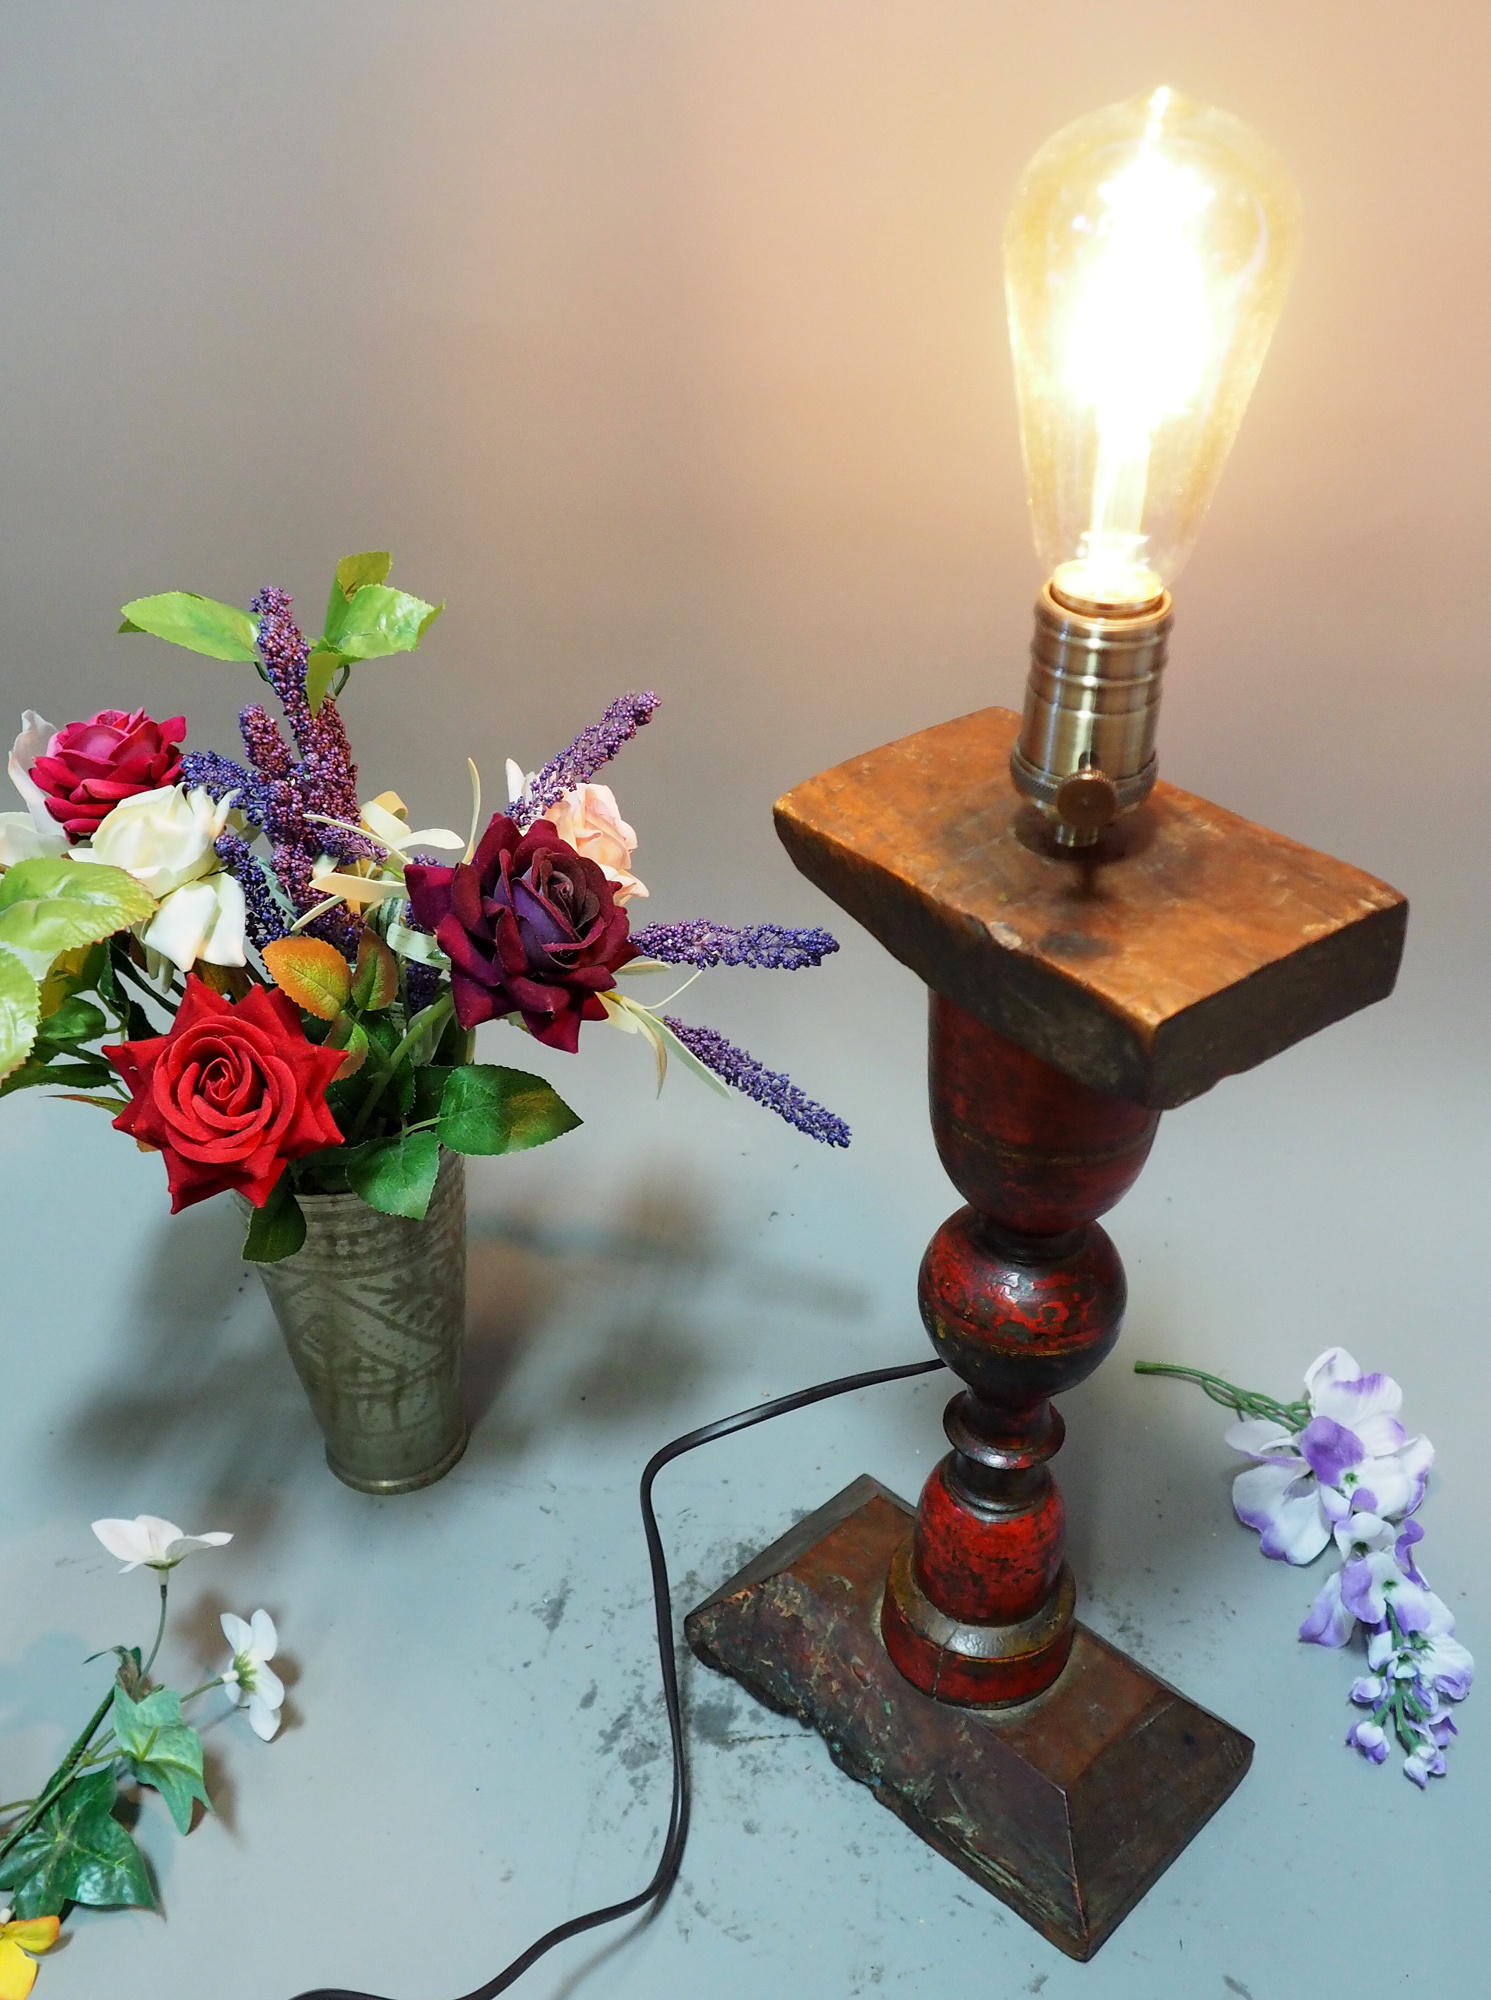 Antique handpainted stunning Vintage Lacquerware wooden Table Lamp with Vintage light fitting from Afghanistan / Pakistan No:21/8